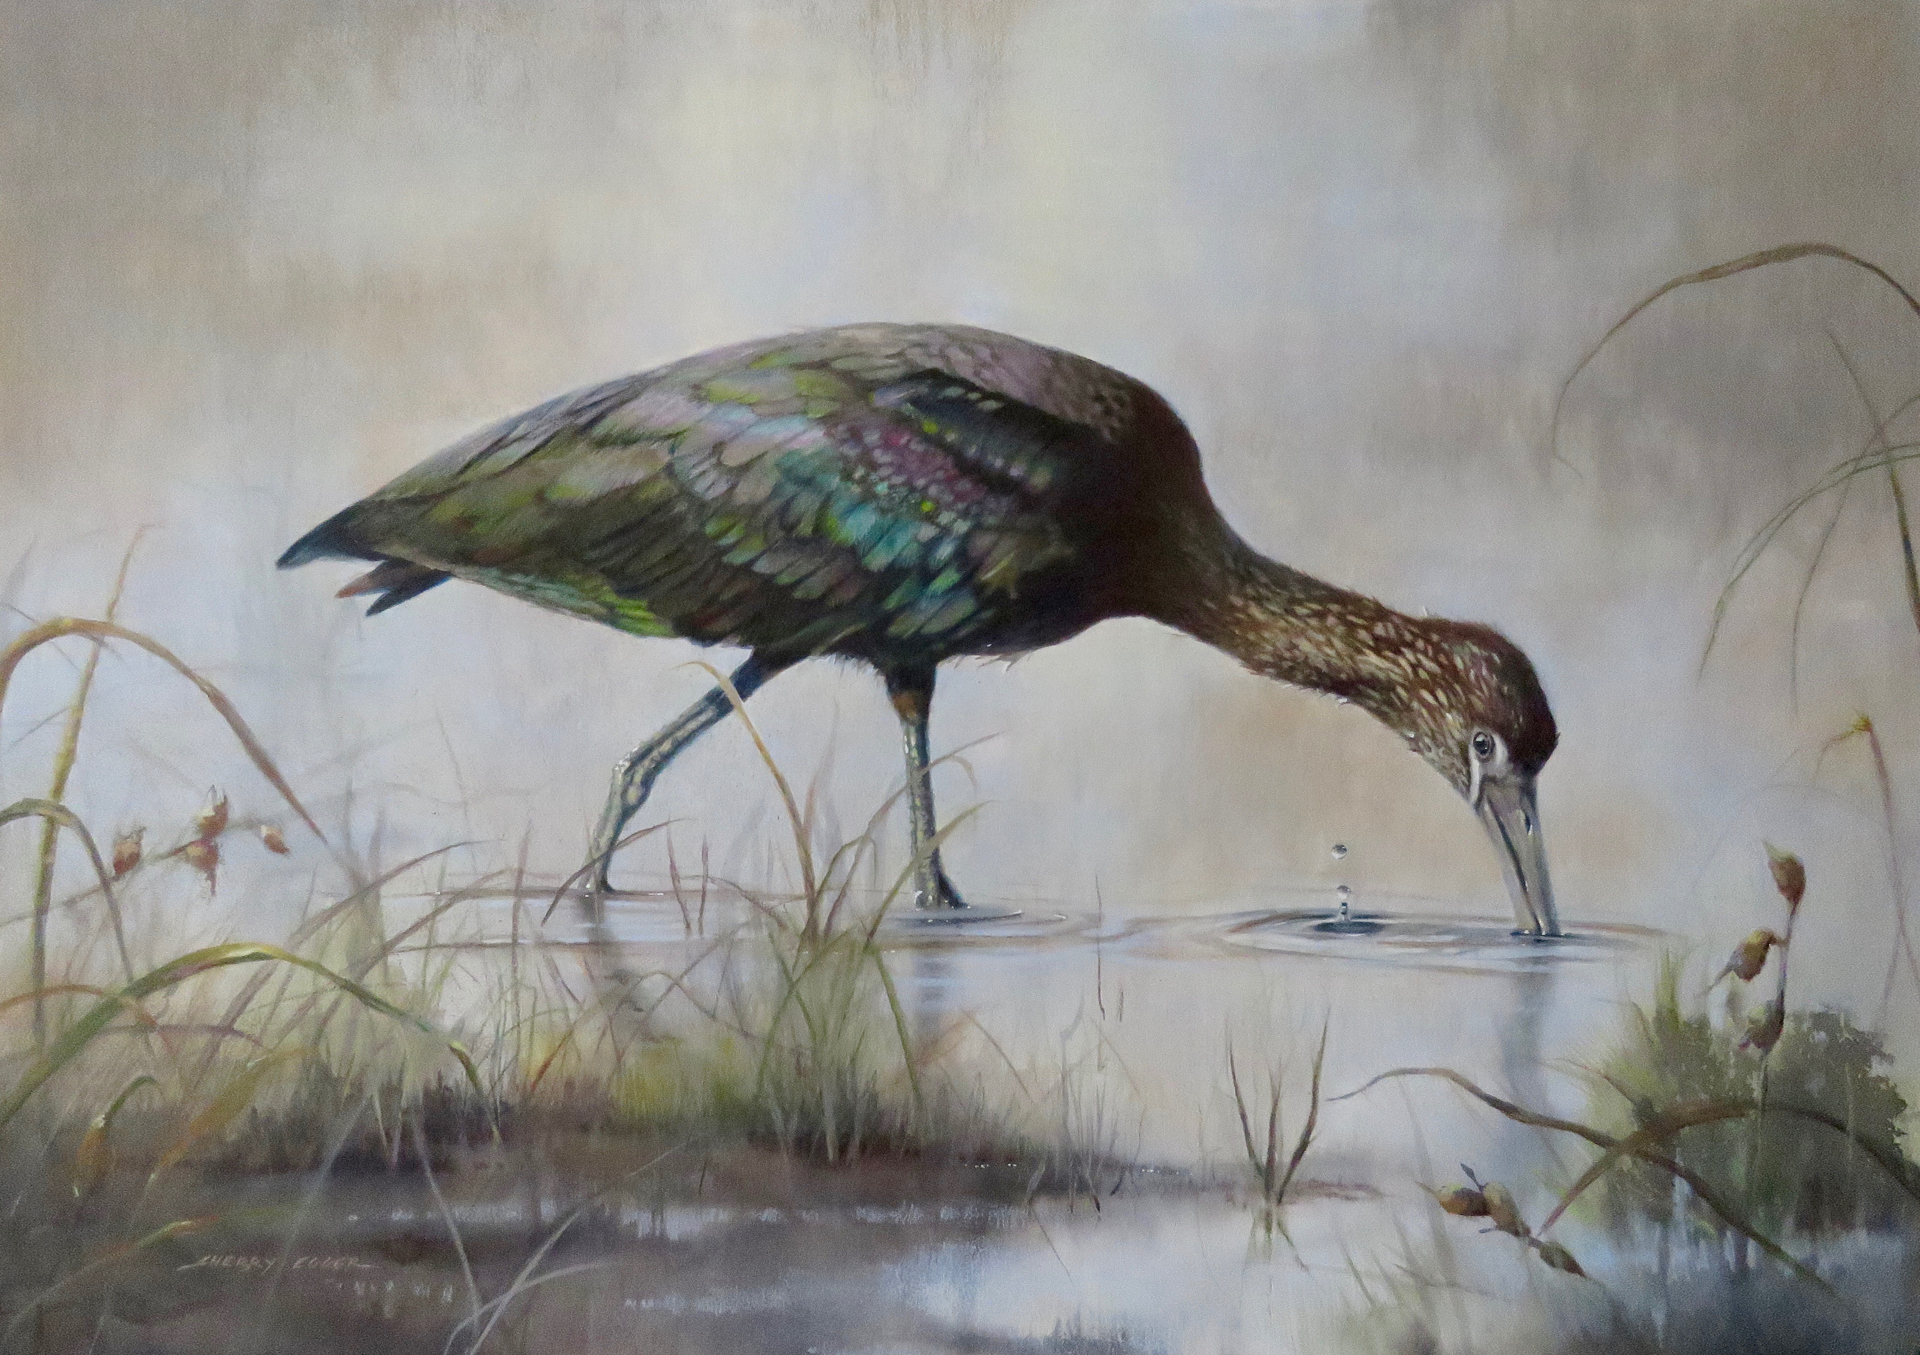 Glossy Ibis by Sherry Egger